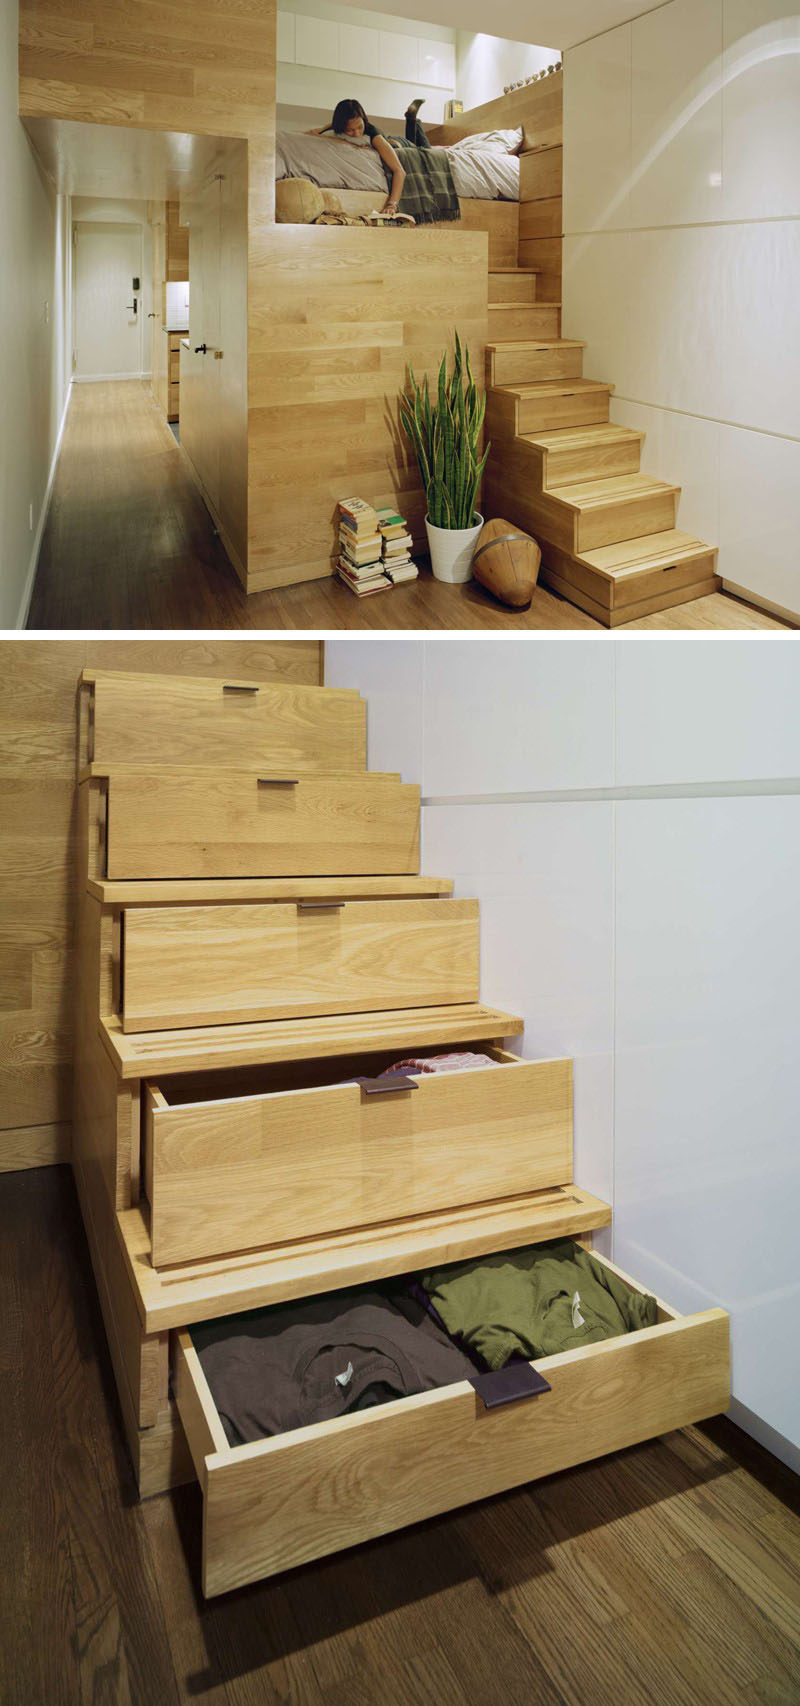 13 stair design ideas for small spaces the staircase leading to the loft bed